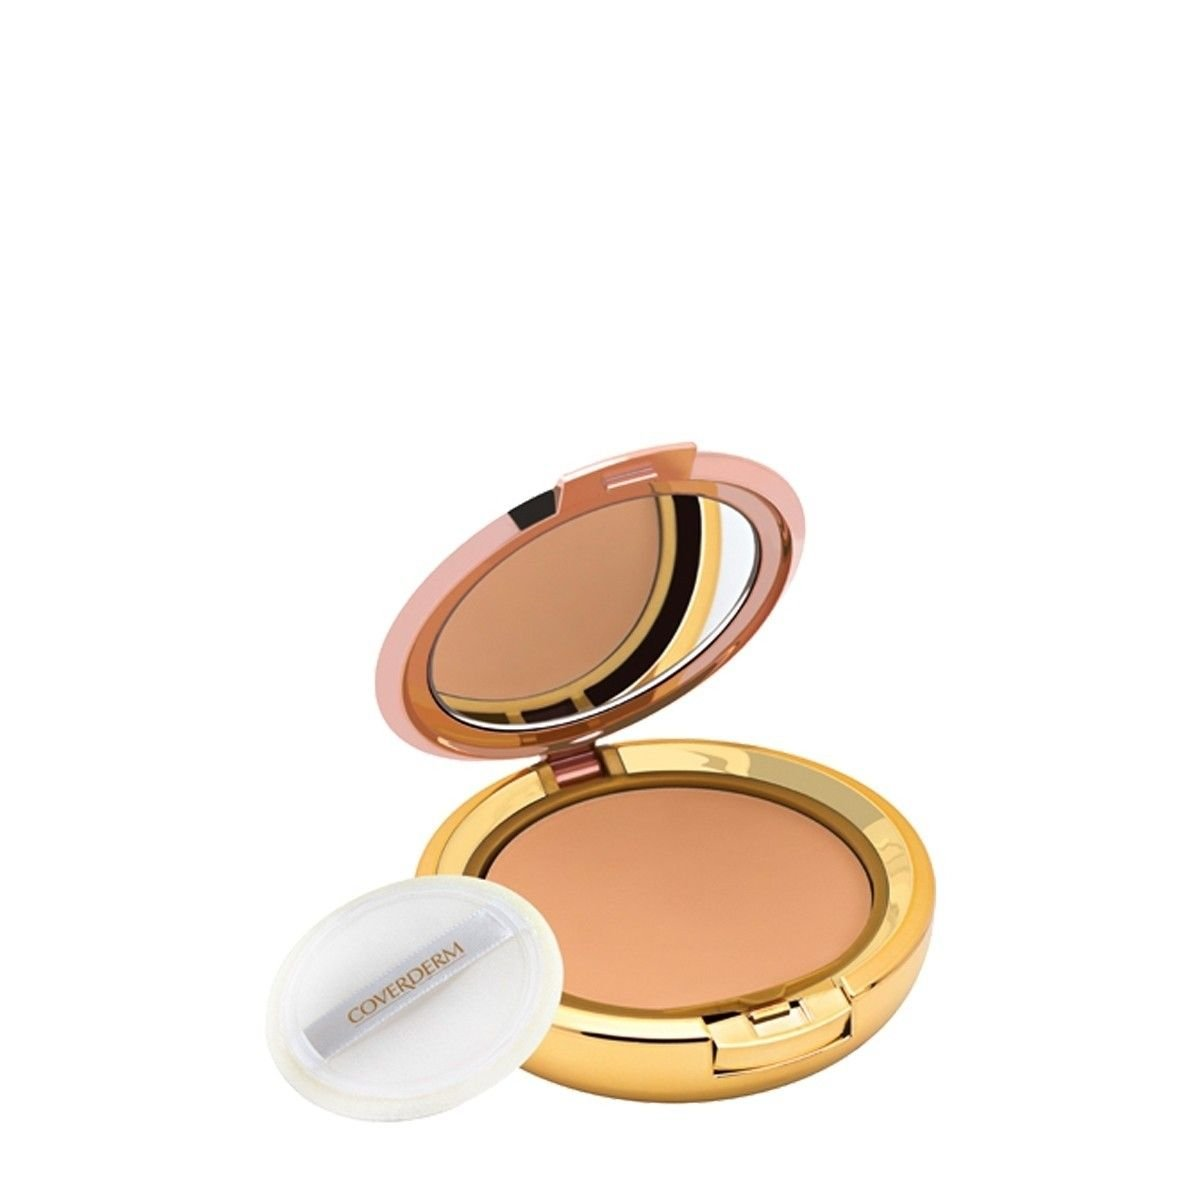 Afbeelding van Coverderm Compact Powder Color Normal 2 Poeder Make up